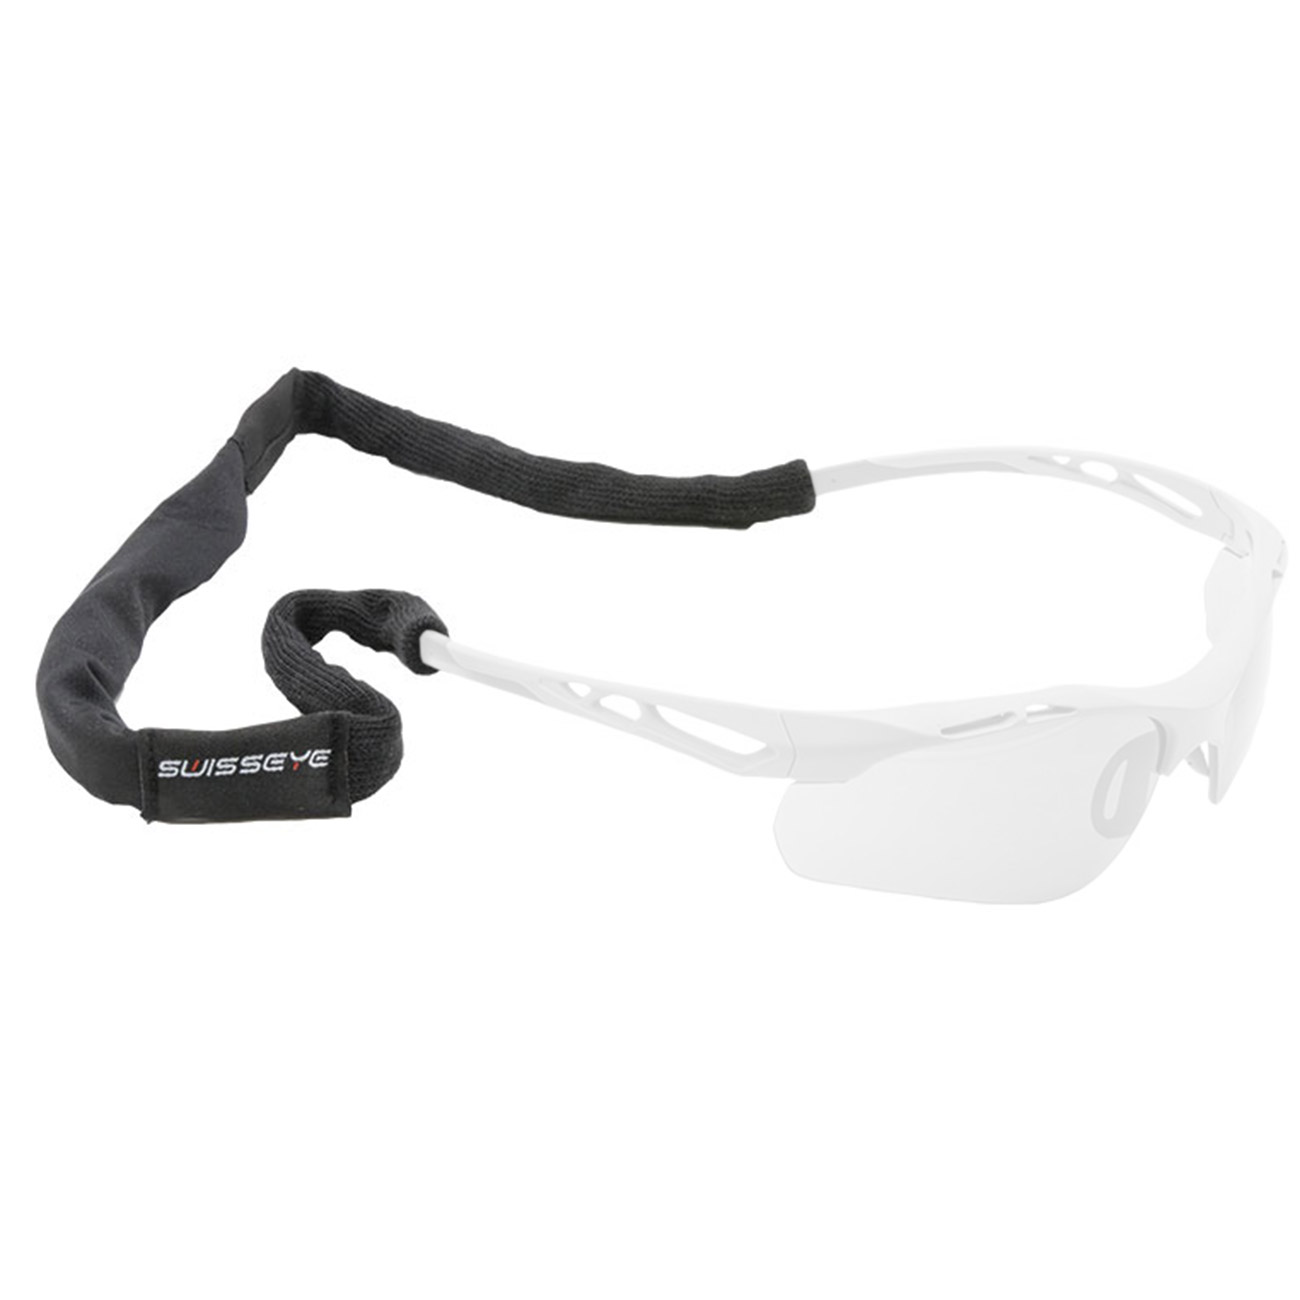 Swiss Eye Brillenband E-Tac Headband multifunktional schwarz 0